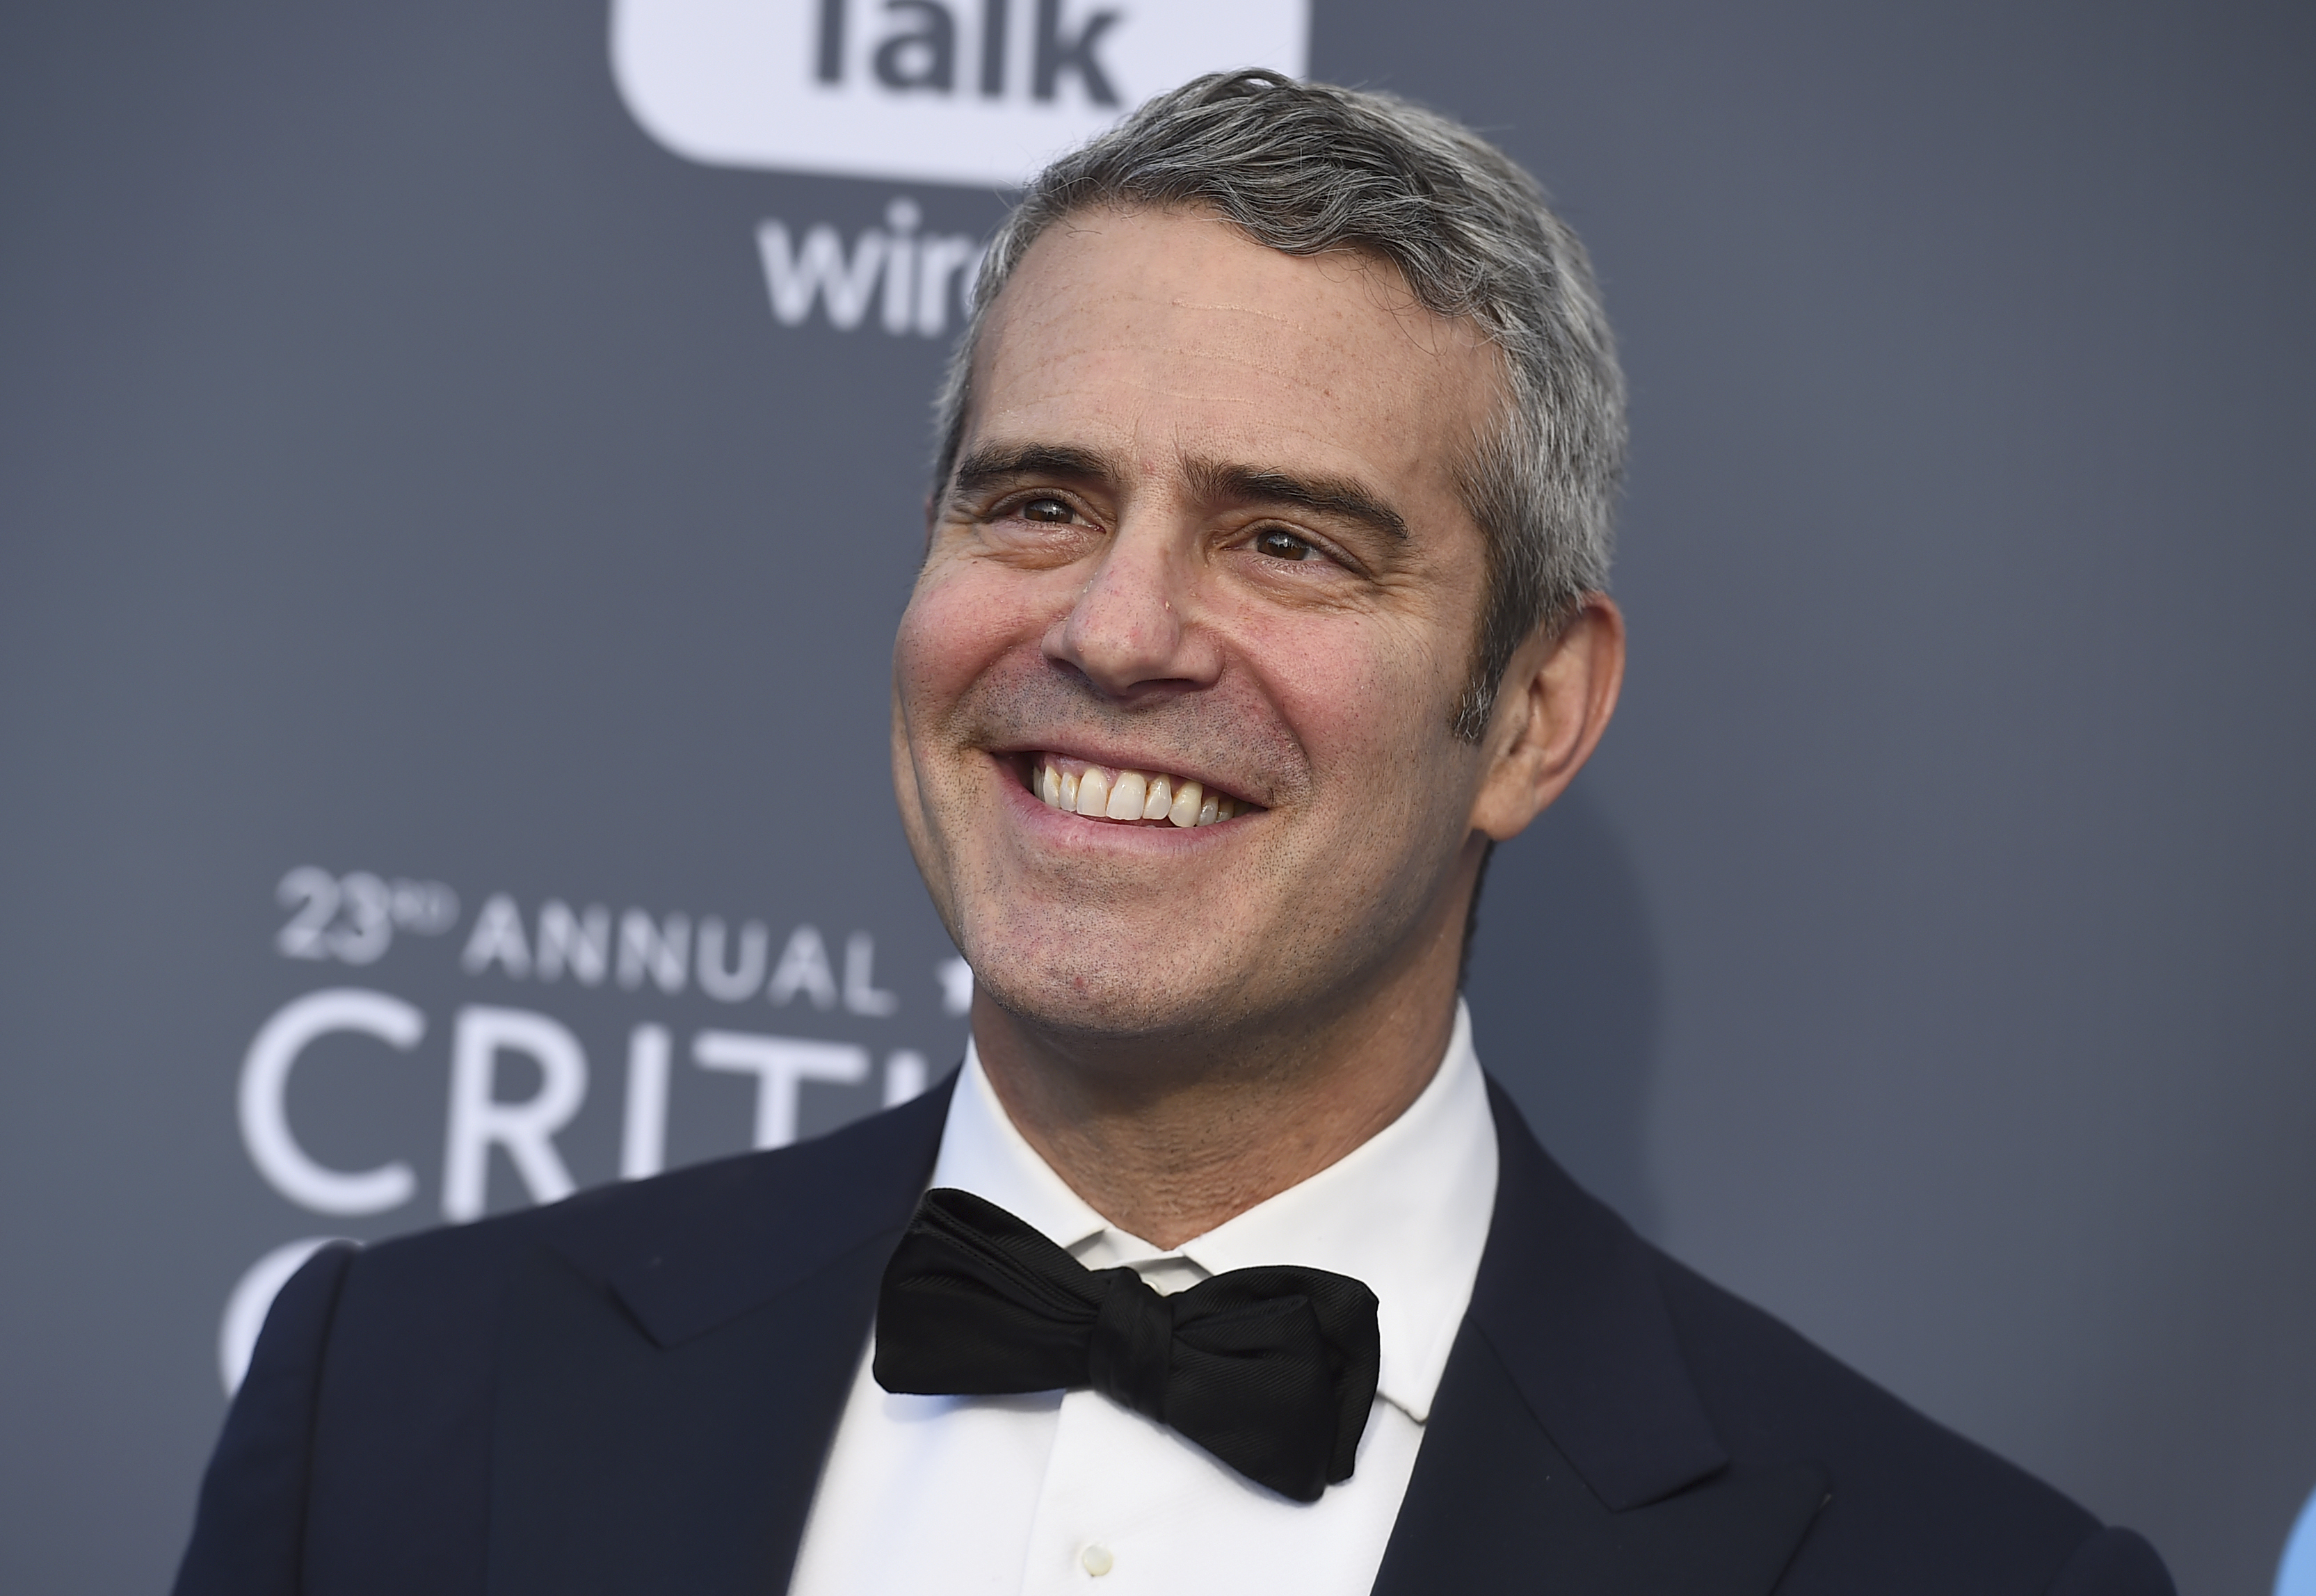 <div class='meta'><div class='origin-logo' data-origin='AP'></div><span class='caption-text' data-credit='Jordan Strauss/Invision/AP'>Andy Cohen arrives at the 23rd annual Critics' Choice Awards at the Barker Hangar on Thursday, Jan. 11, 2018, in Santa Monica, Calif.</span></div>